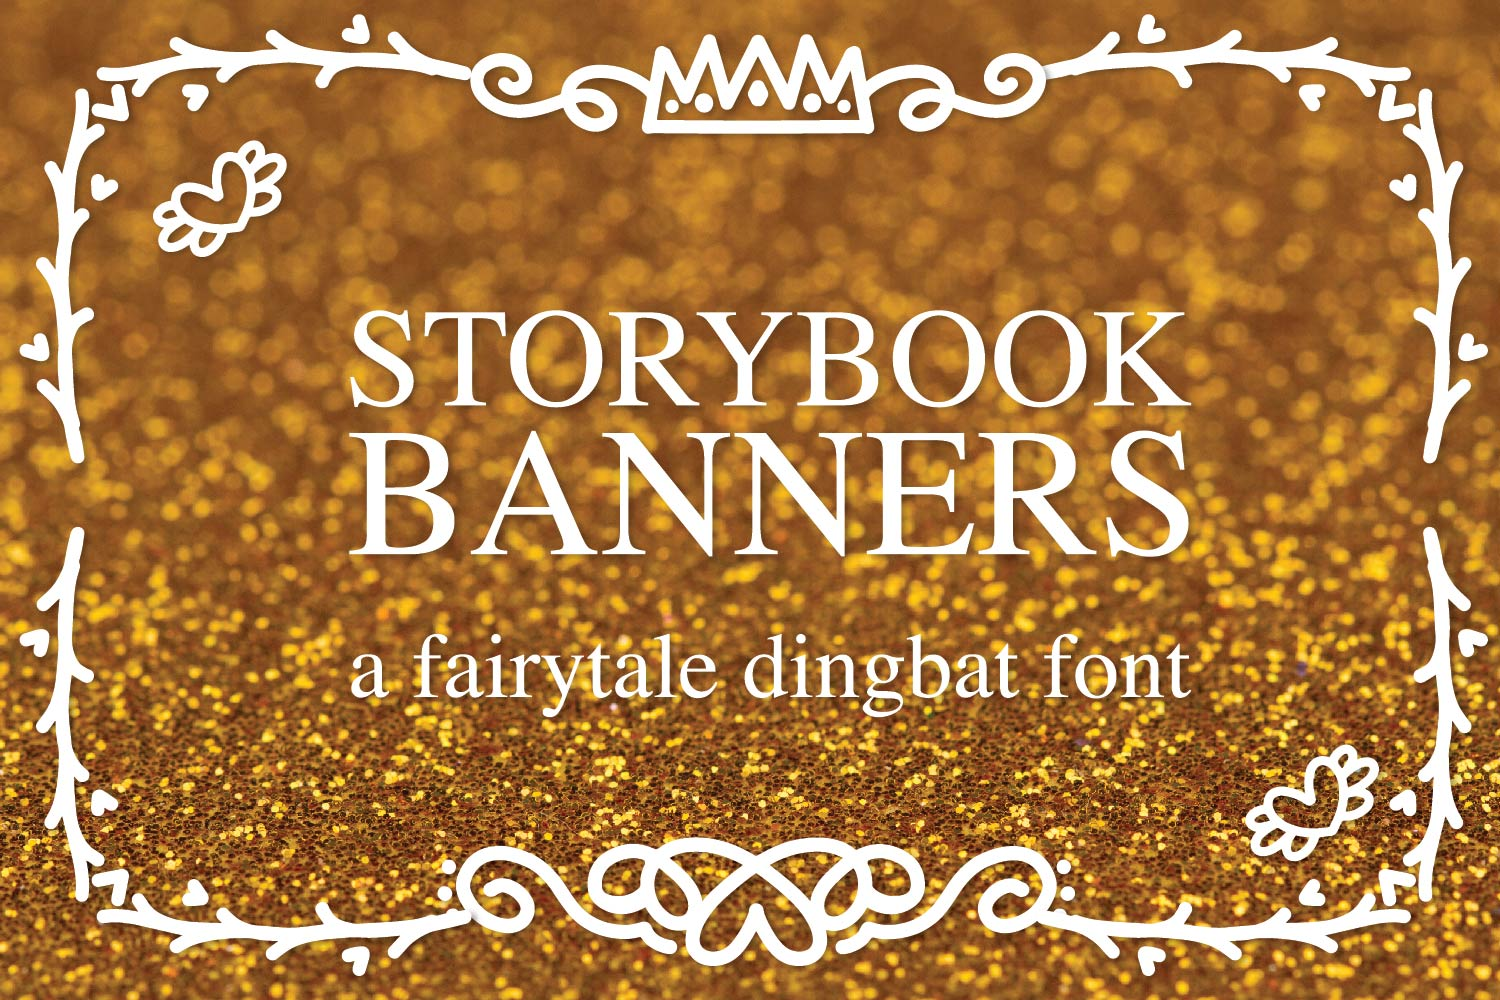 Storybook Banners - A Dingbat Font Full of Magical Borders example image 1